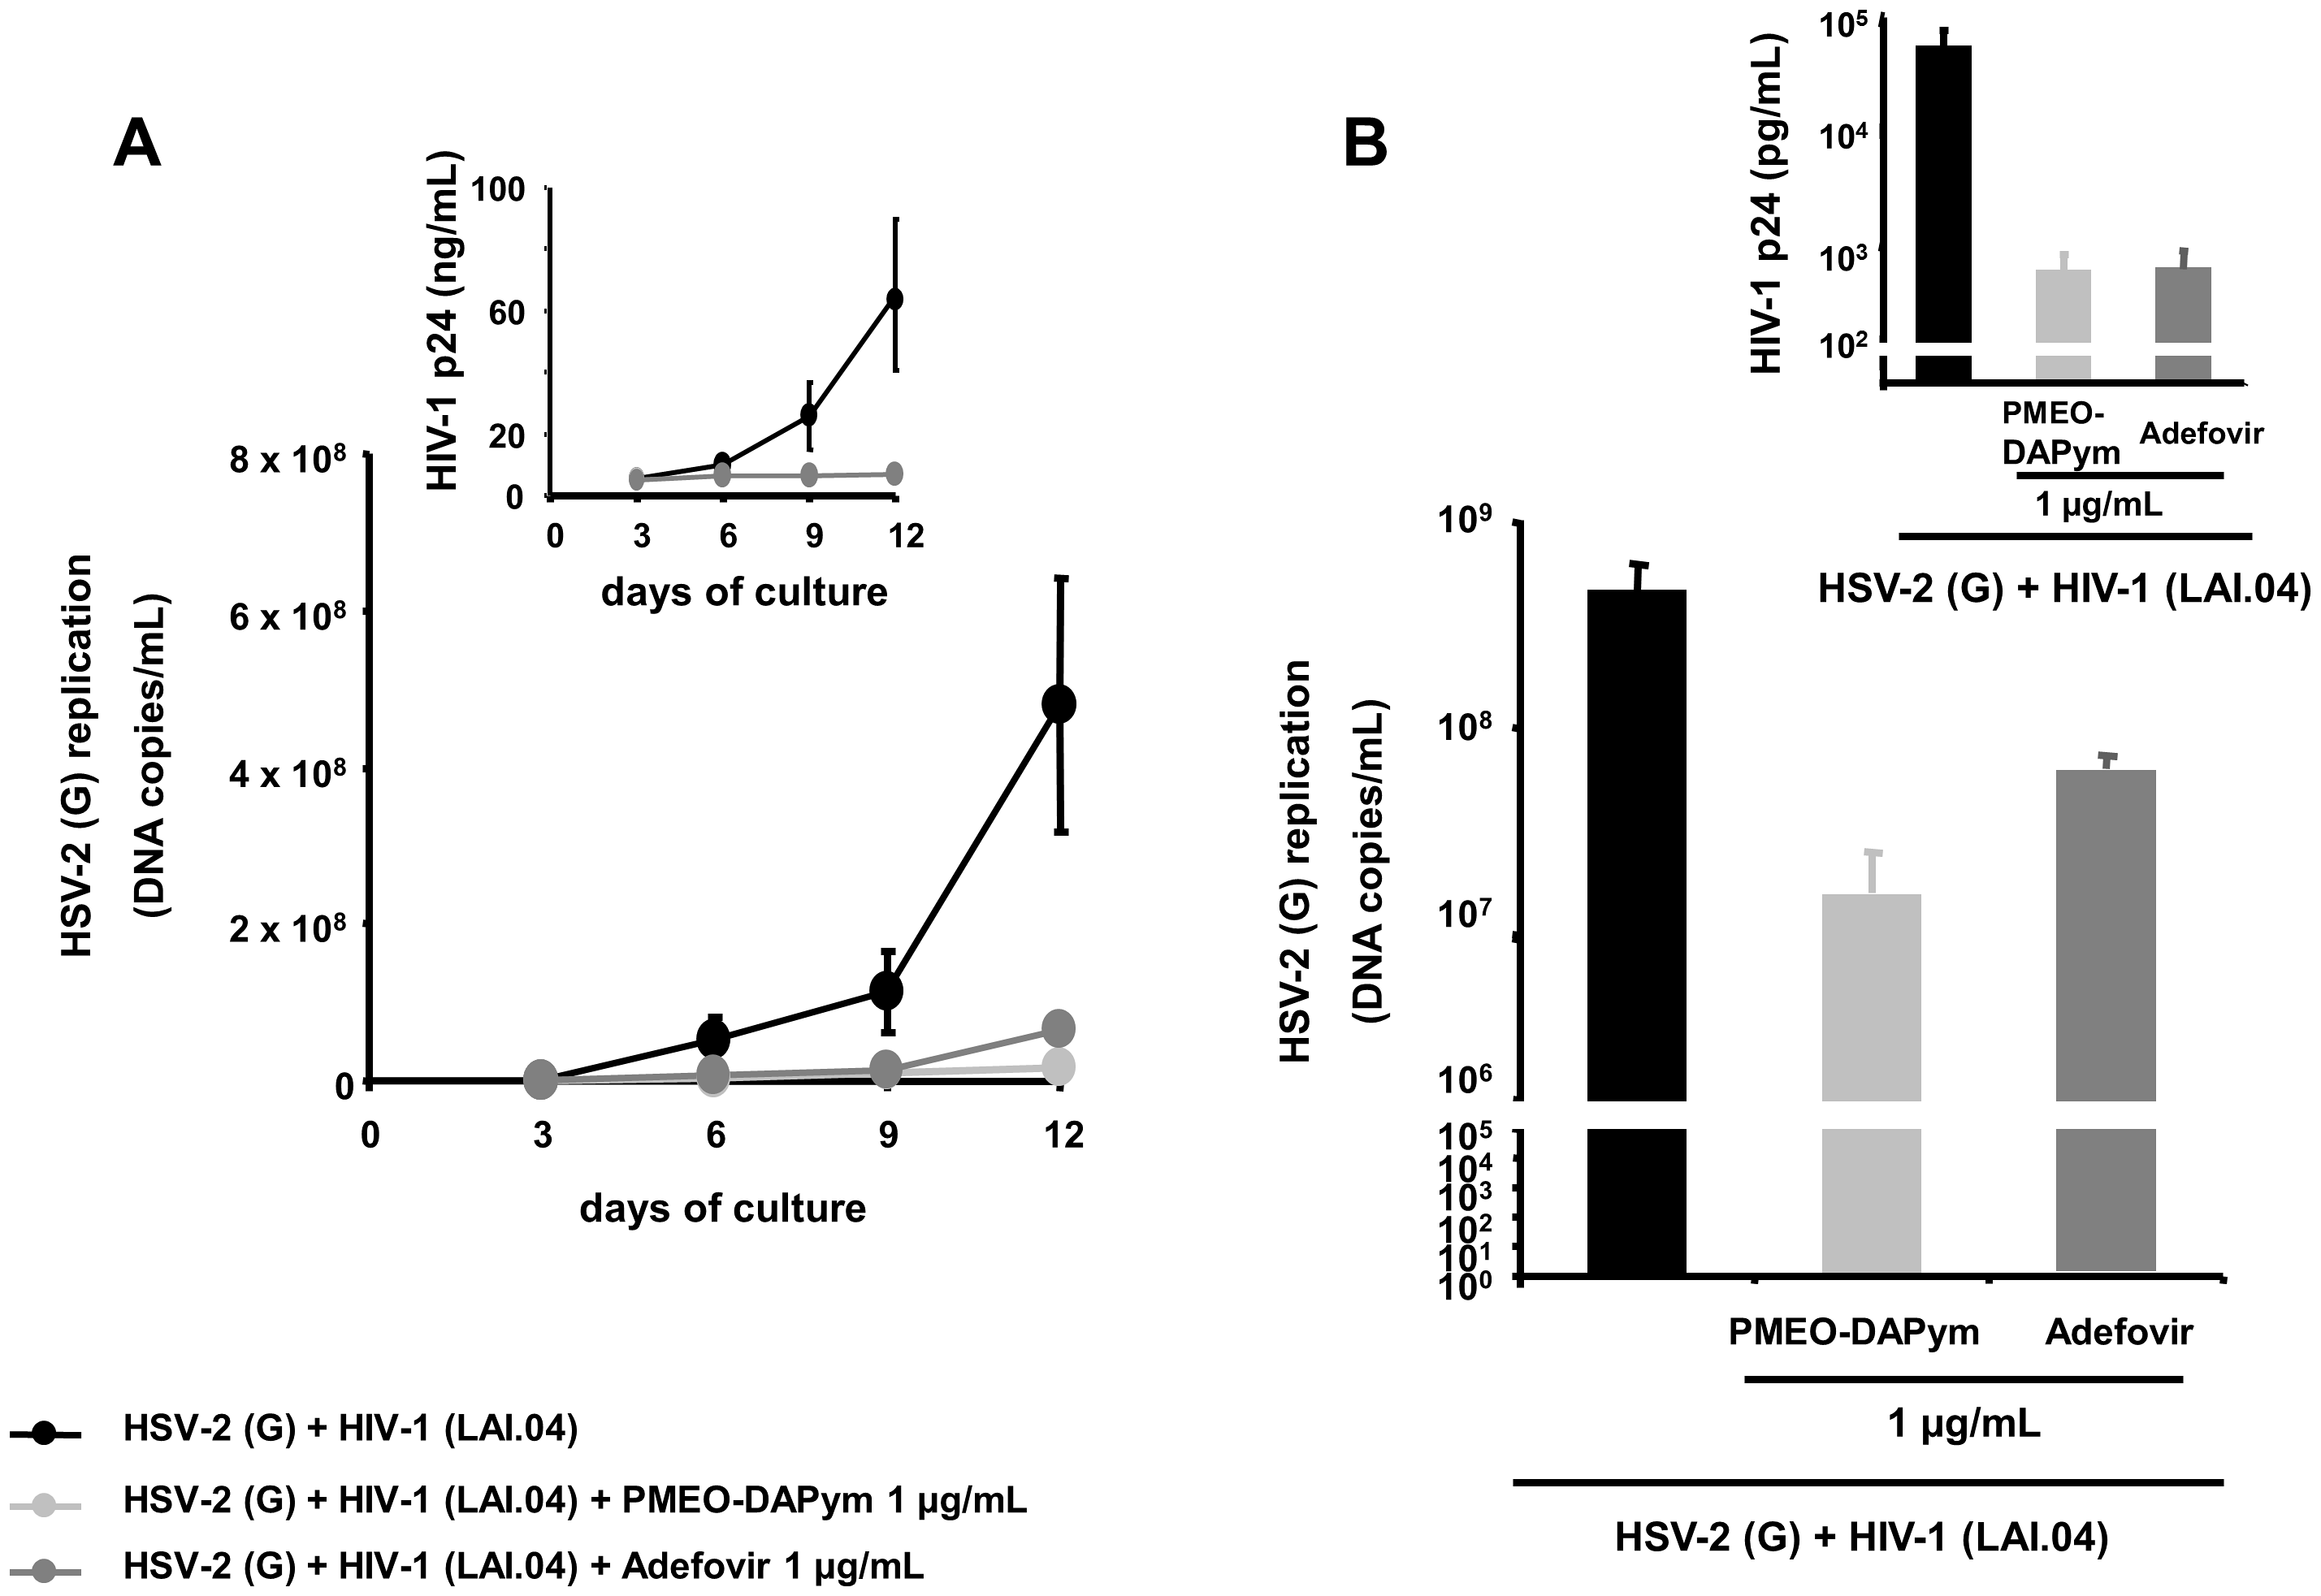 Suppression of HSV-2 in single-infected and HIV-1 co-infected human <i>ex vivo</i> tonsillar tissue by adefovir and PMEO-DAPym.